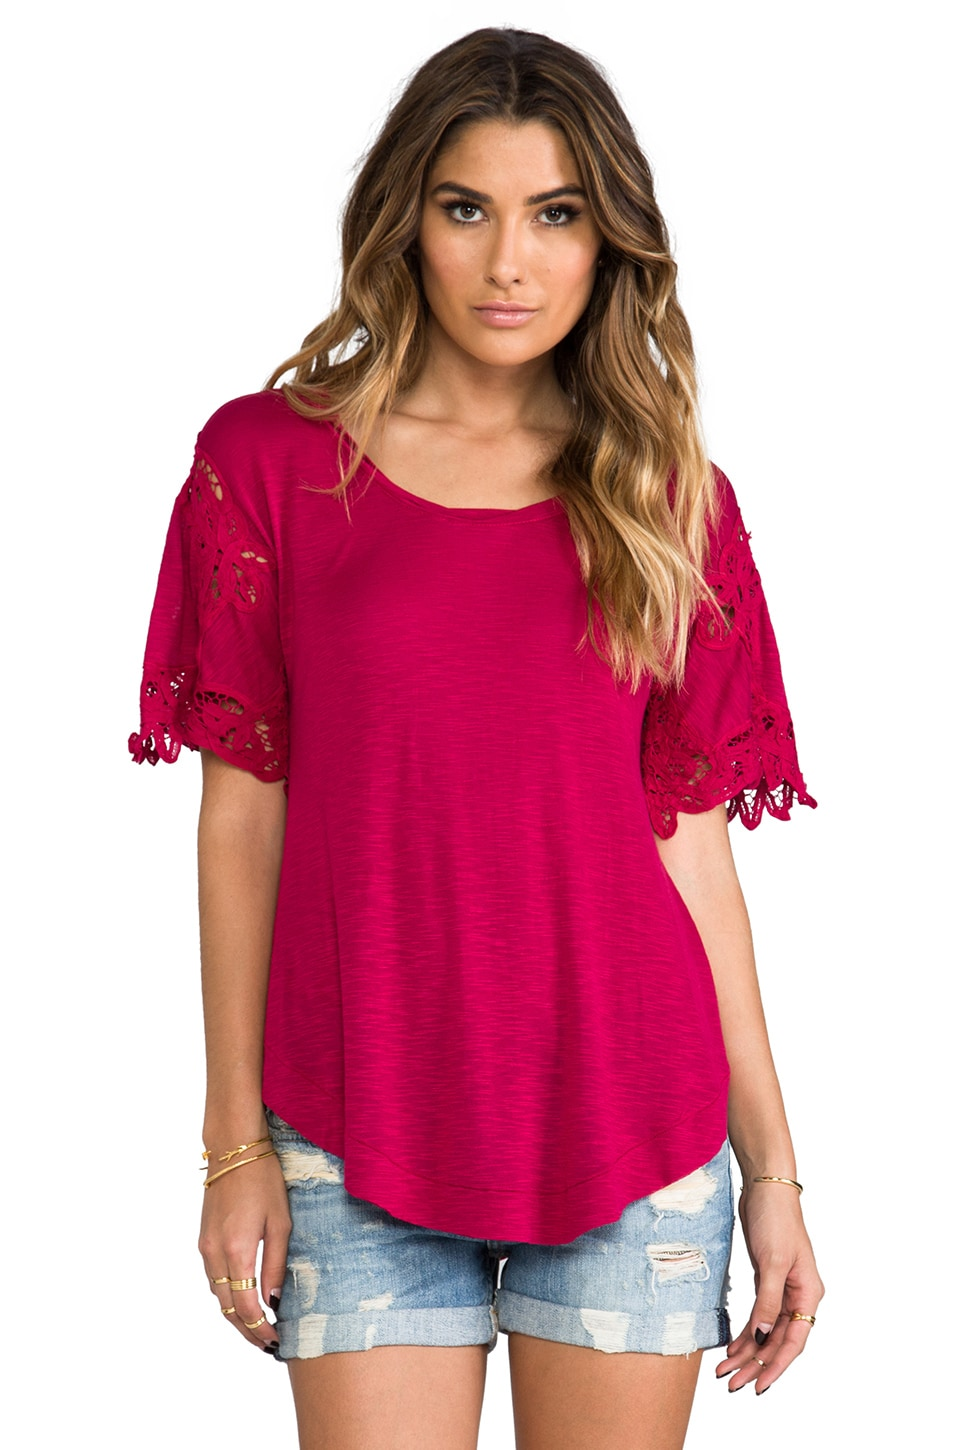 Free People Mallary's Battenberg Tee in Raspberry